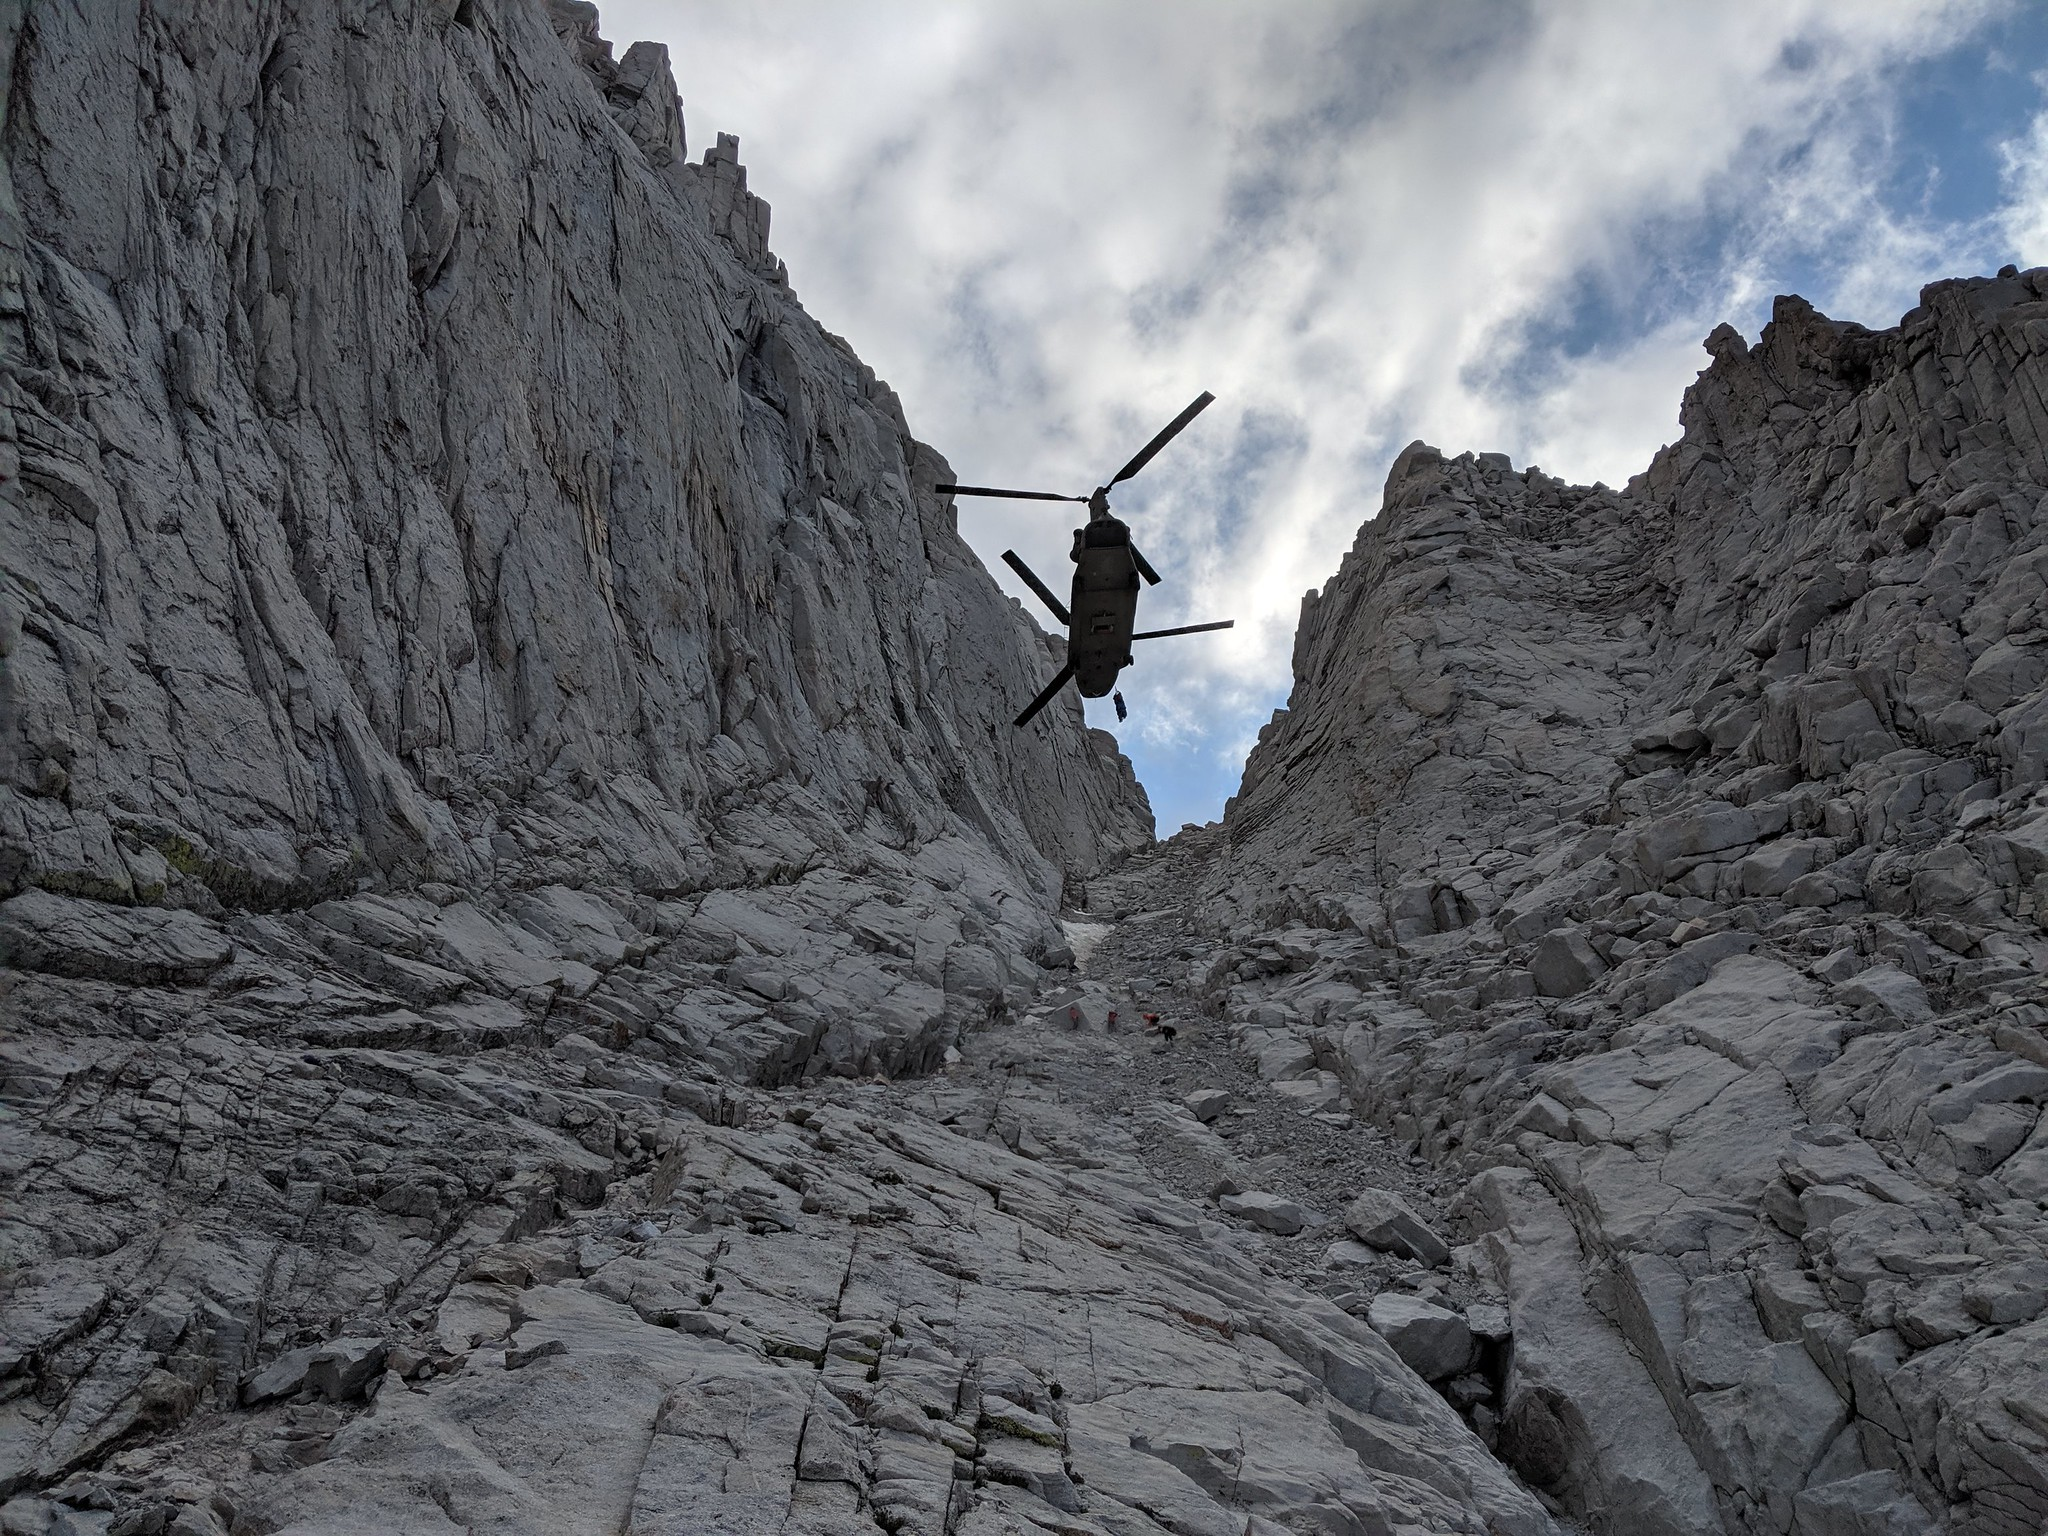 A California Army National Guard CH-47F Chinook helicopter hovers Aug. 25, 2019, as an injured hiker is hoisted on a litter from an area 13,800 feet up Mount Whitney in Inyo County, Calif. (Photo courtesy Inyo County Search and Rescue)